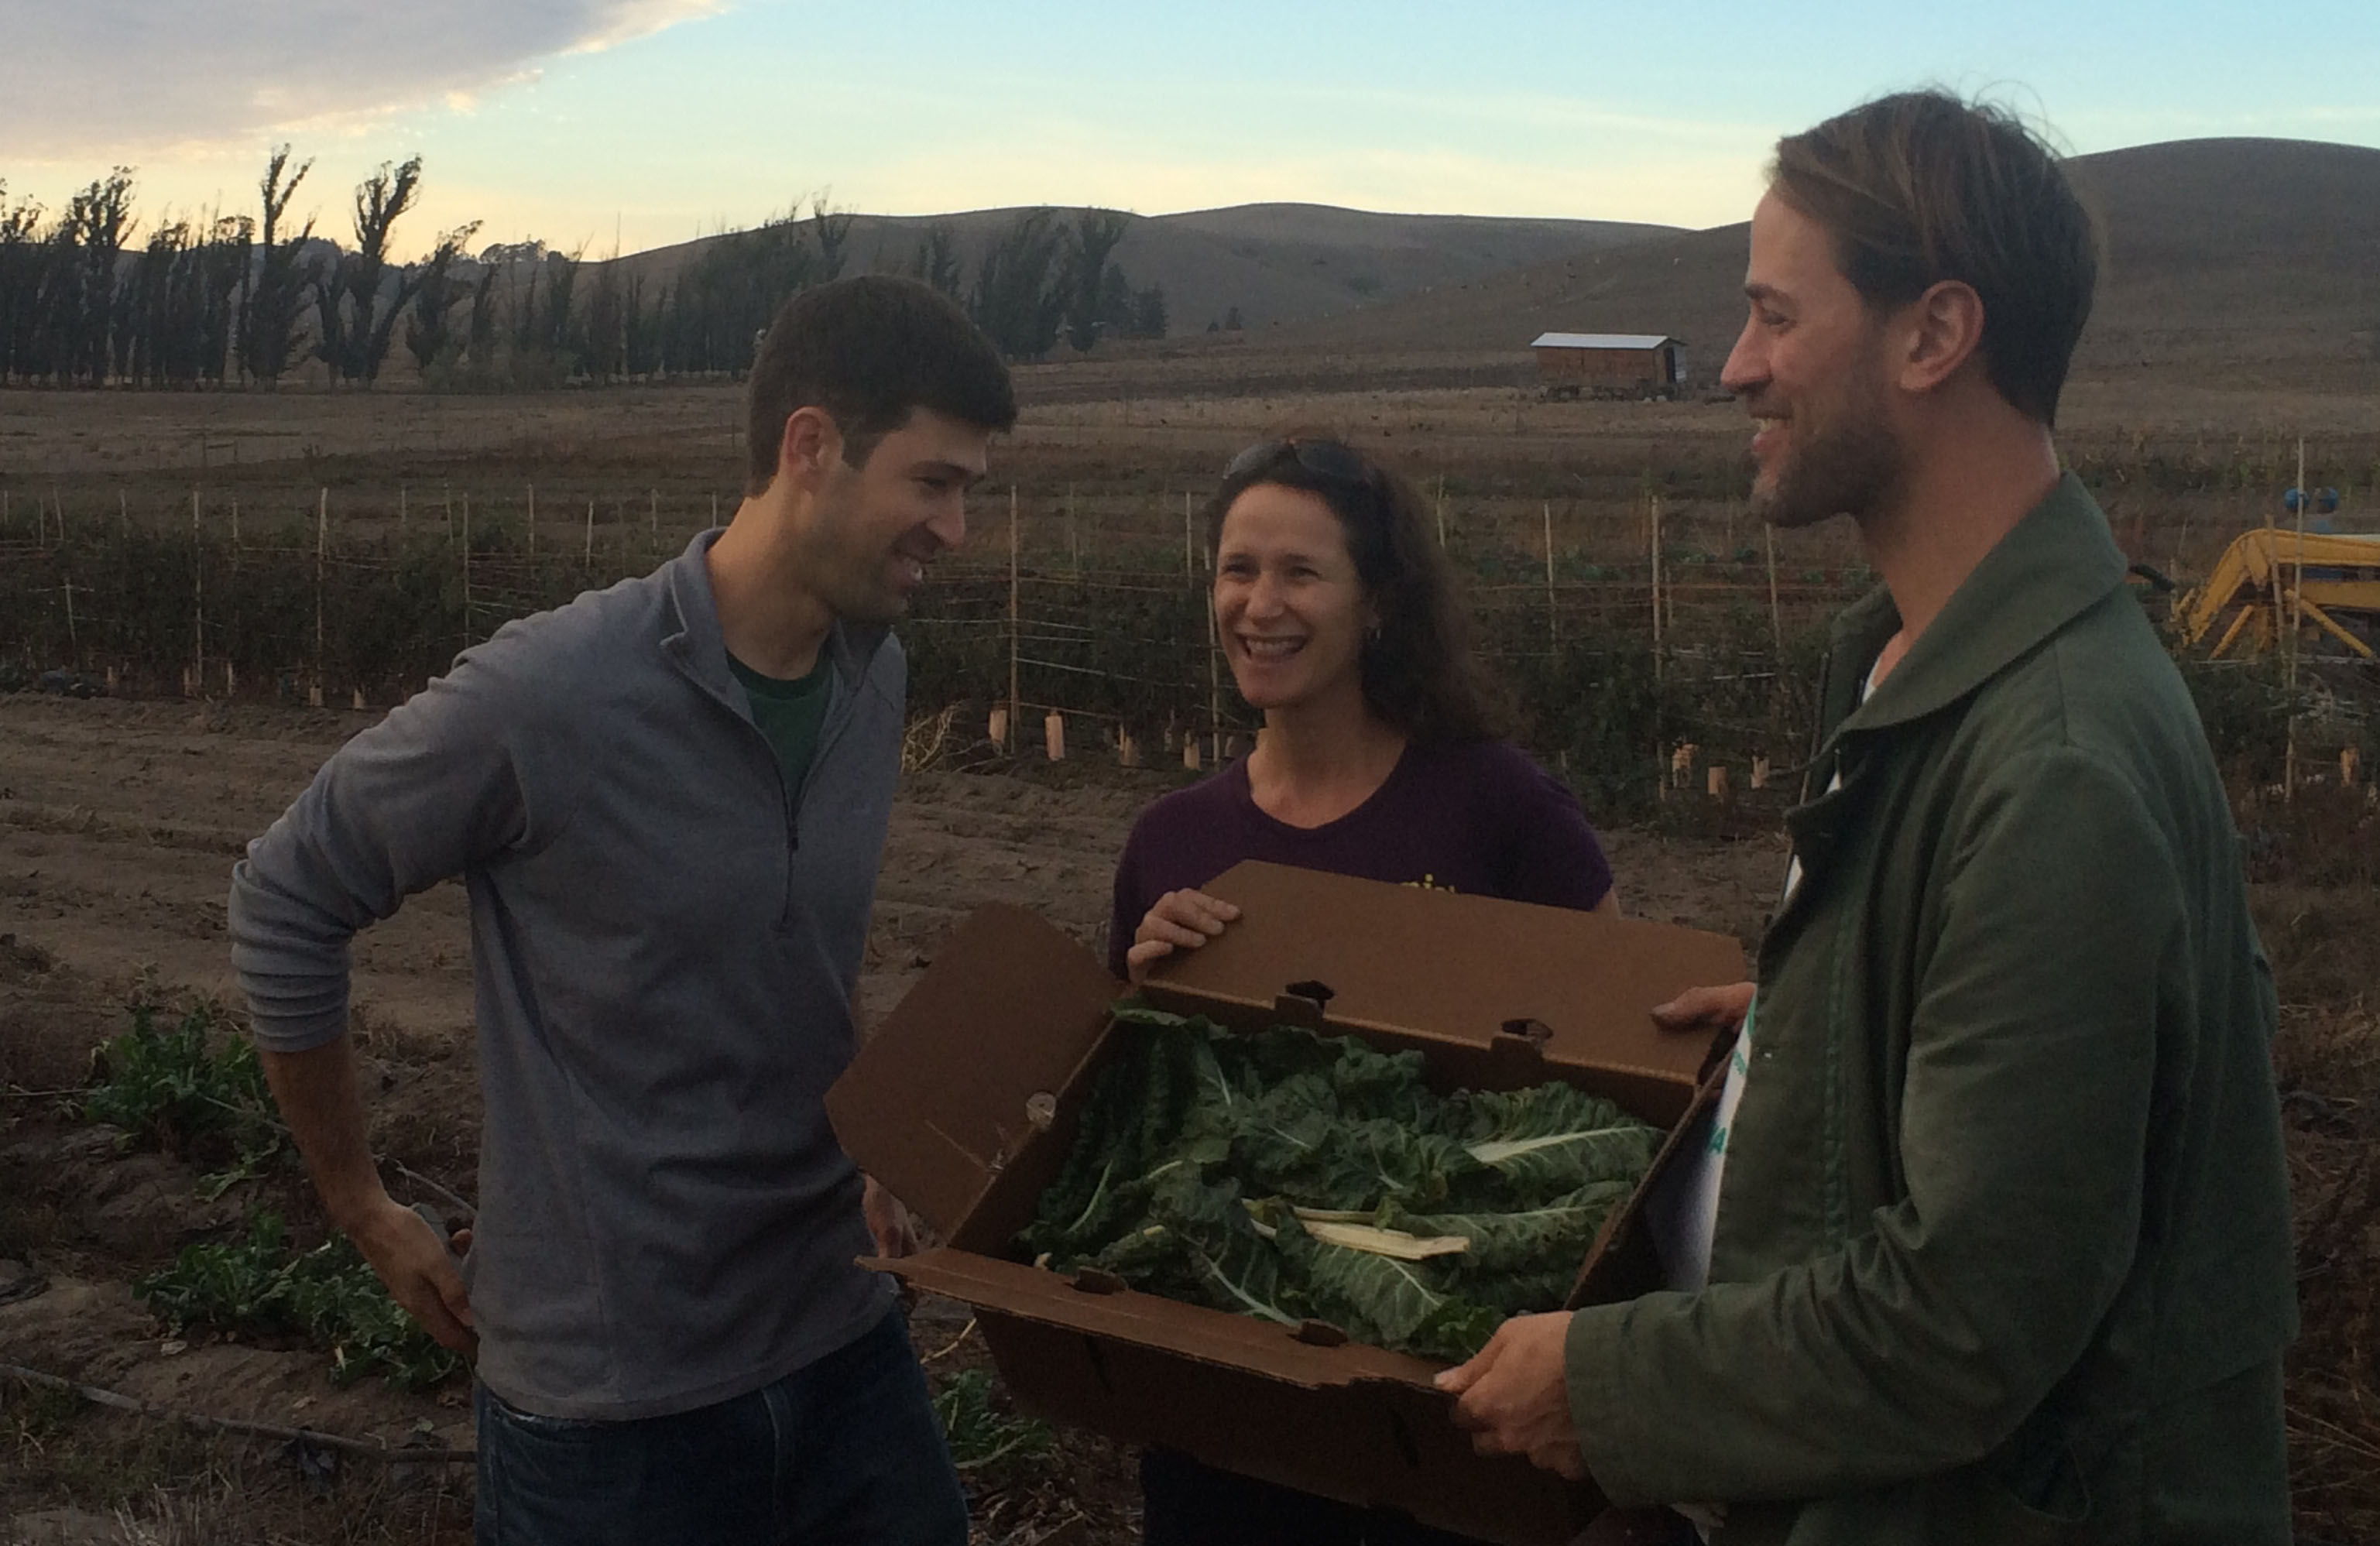 Jonathan Bloom, Dana Gunders and Tristram Stuart show what they gleaned at Bloomfield Organics for Feeding the 5000: Oakland